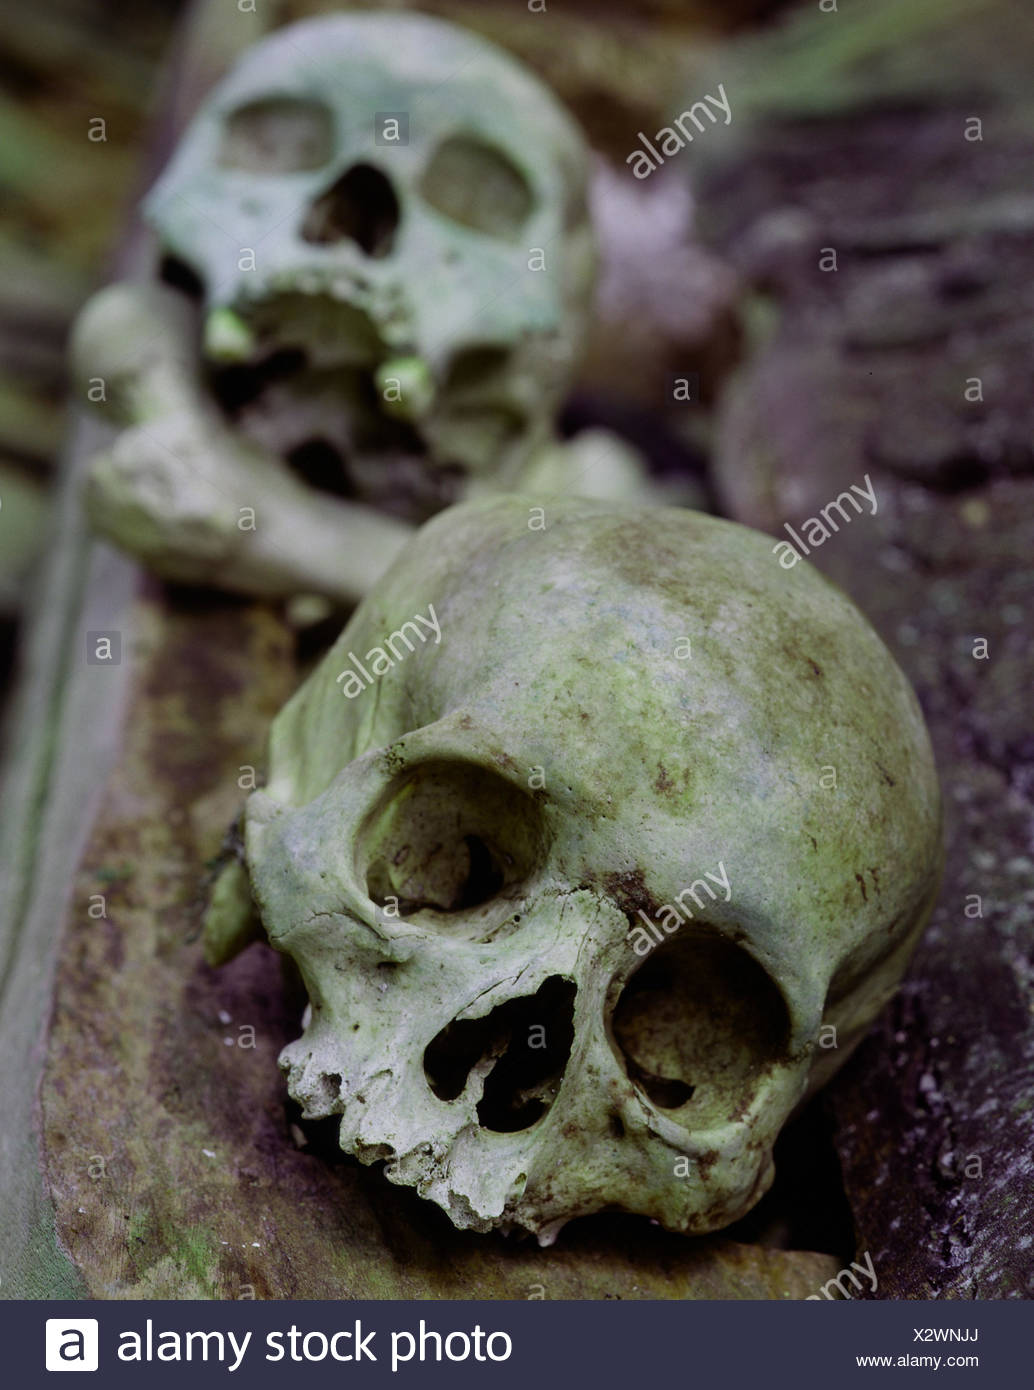 Indonesia, Kete-Kesu, goal nanny's tomb, detail, dead person's skull, South-East Asia, island state, Celebes, Rantepao, forefather tombs, forefather tomb, tomb, tomb, skull, skeleton leftovers, humanely, cult the dead, ancestor worship, funerals, primitiv - Stock Image